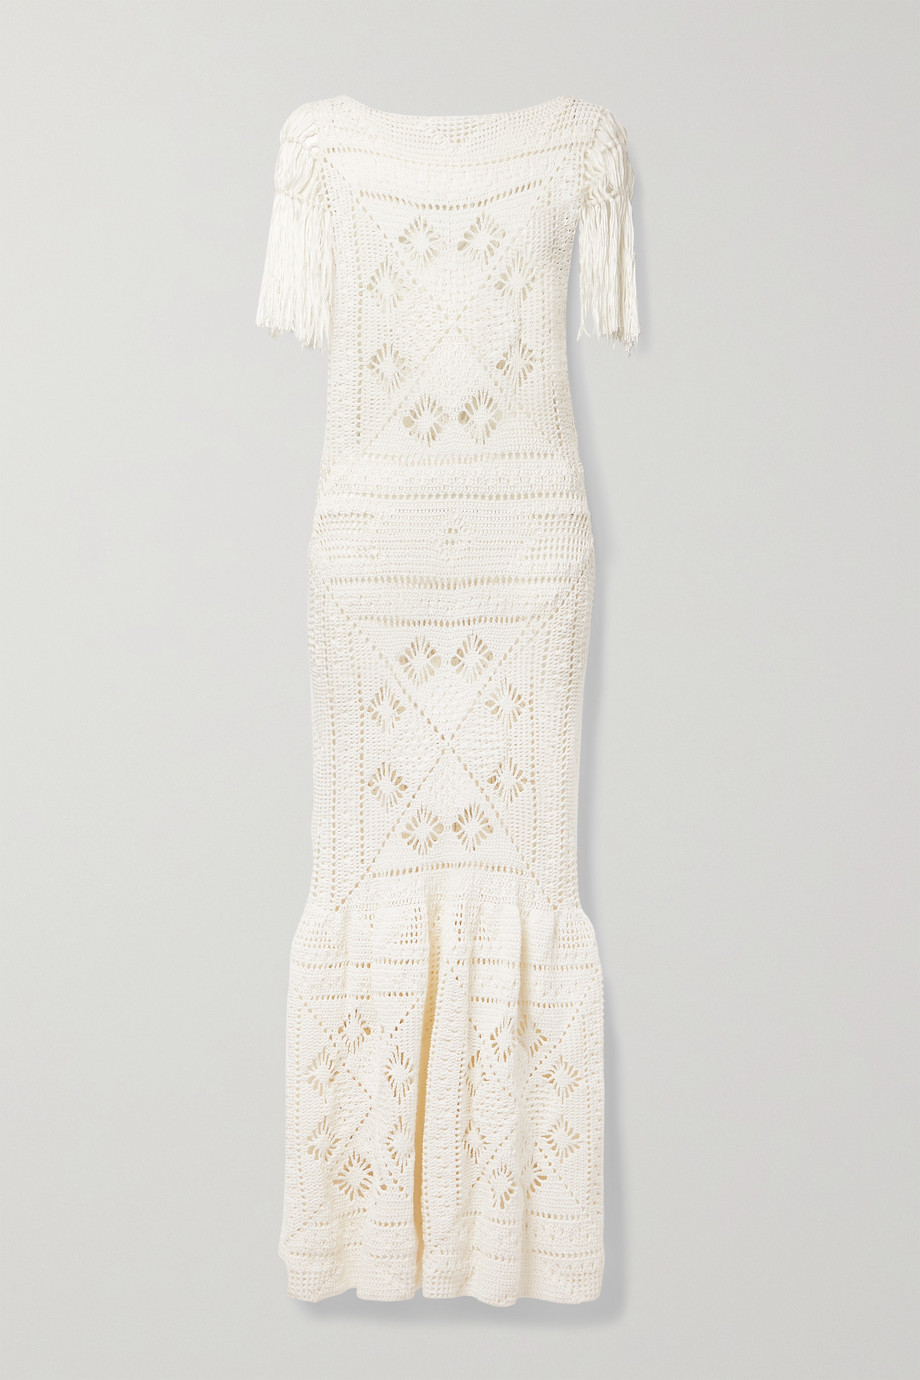 Zimmermann Candescent fringed crocheted cotton maxi dress